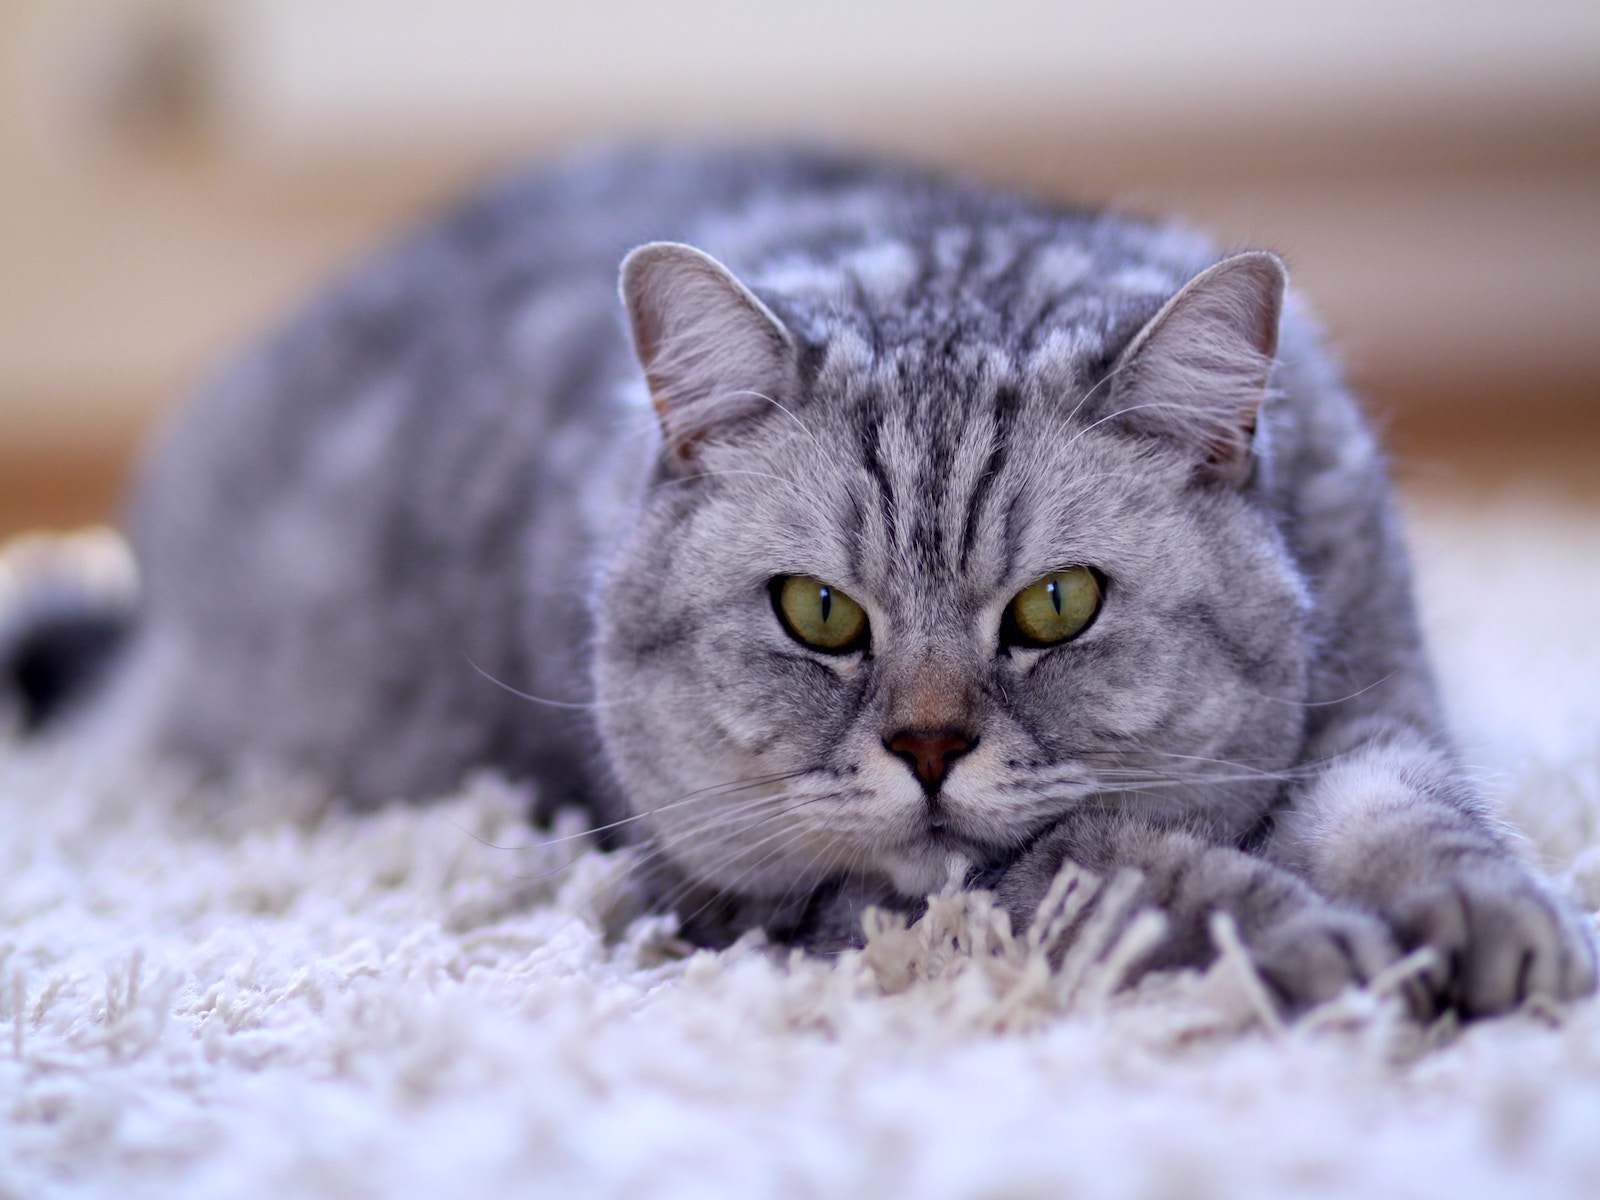 B12 Deficiency in Cats: The Role of the Gut